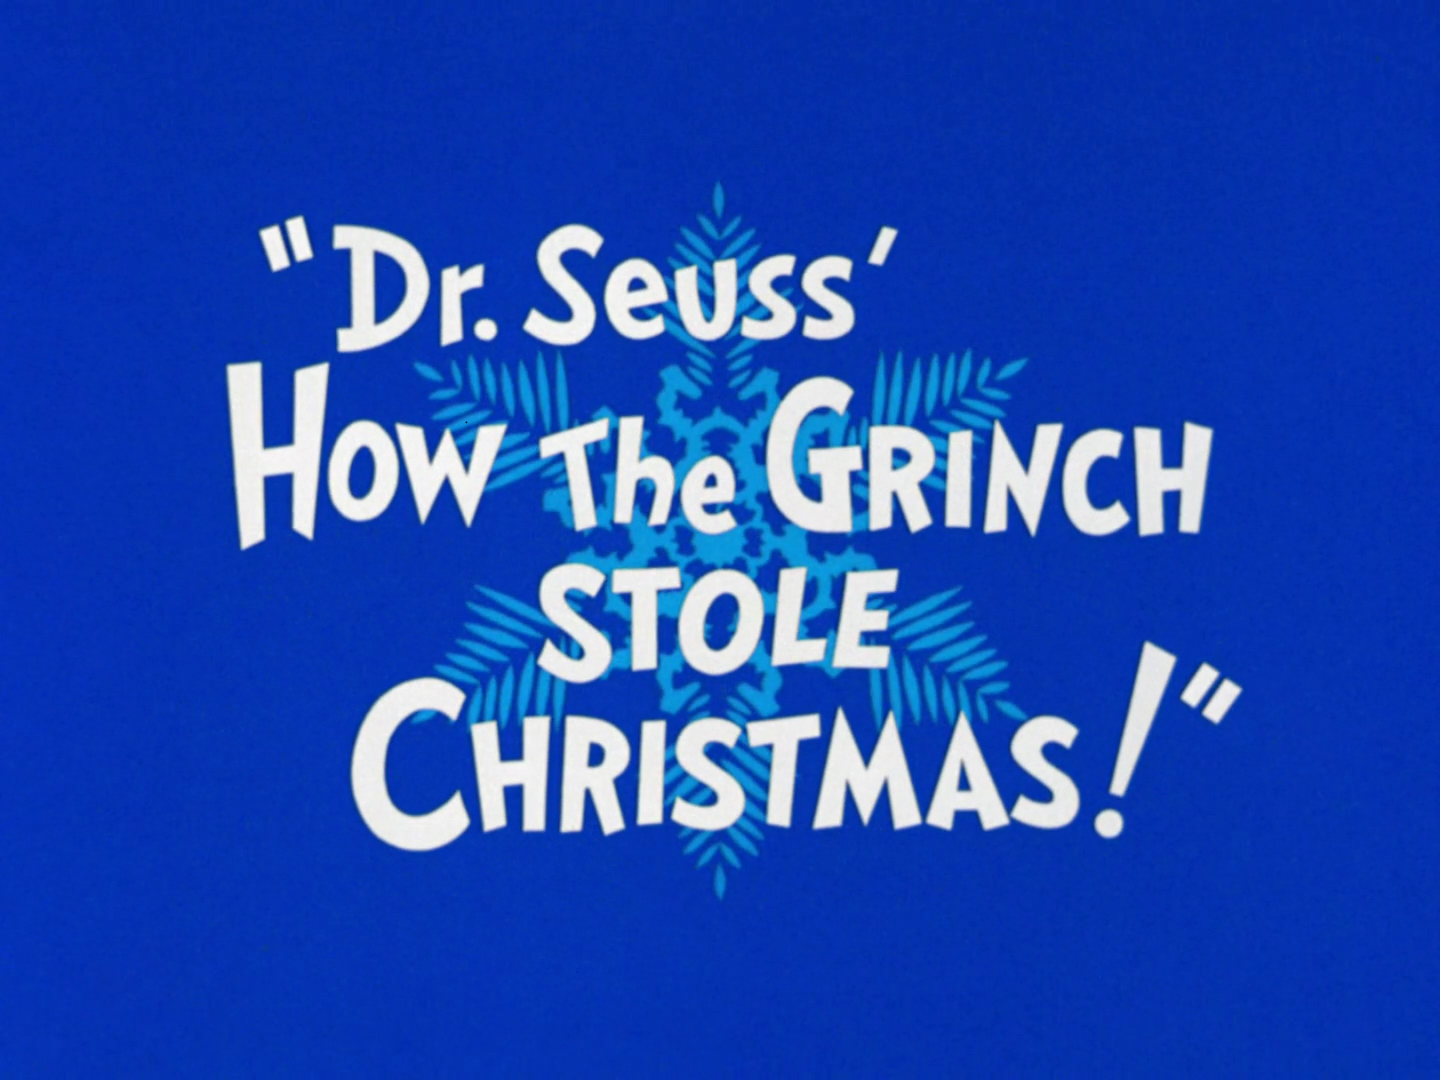 How The Grinch Stole Christmas 2020 Wiki How the Grinch Stole Christmas! (1966) | Christmas Specials Wiki